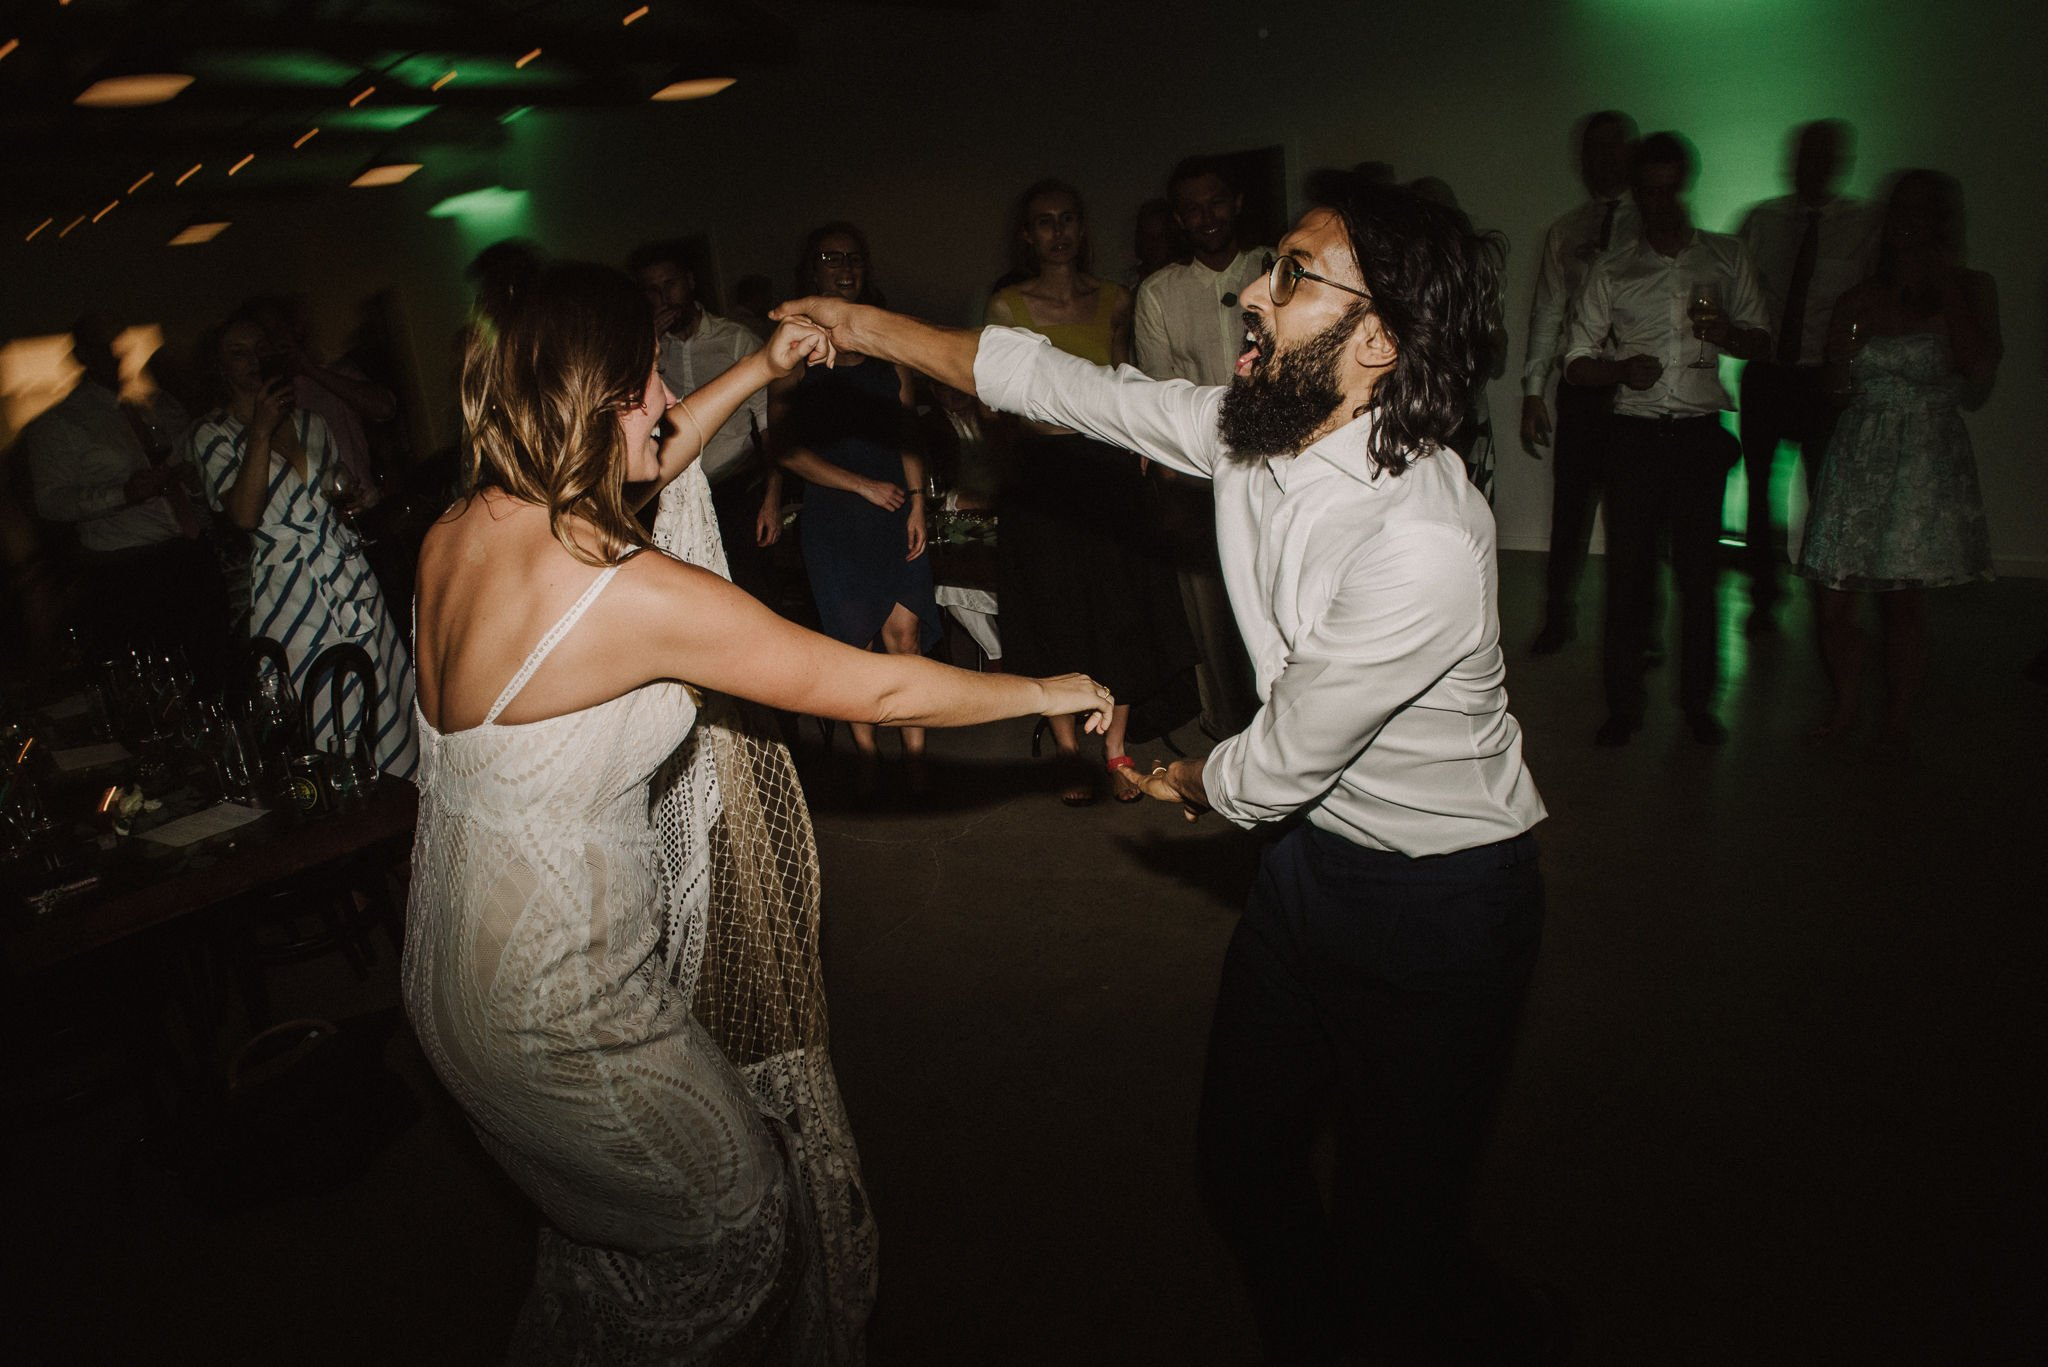 Bride And Groom Dancing With Friends And Family Circled Around Them